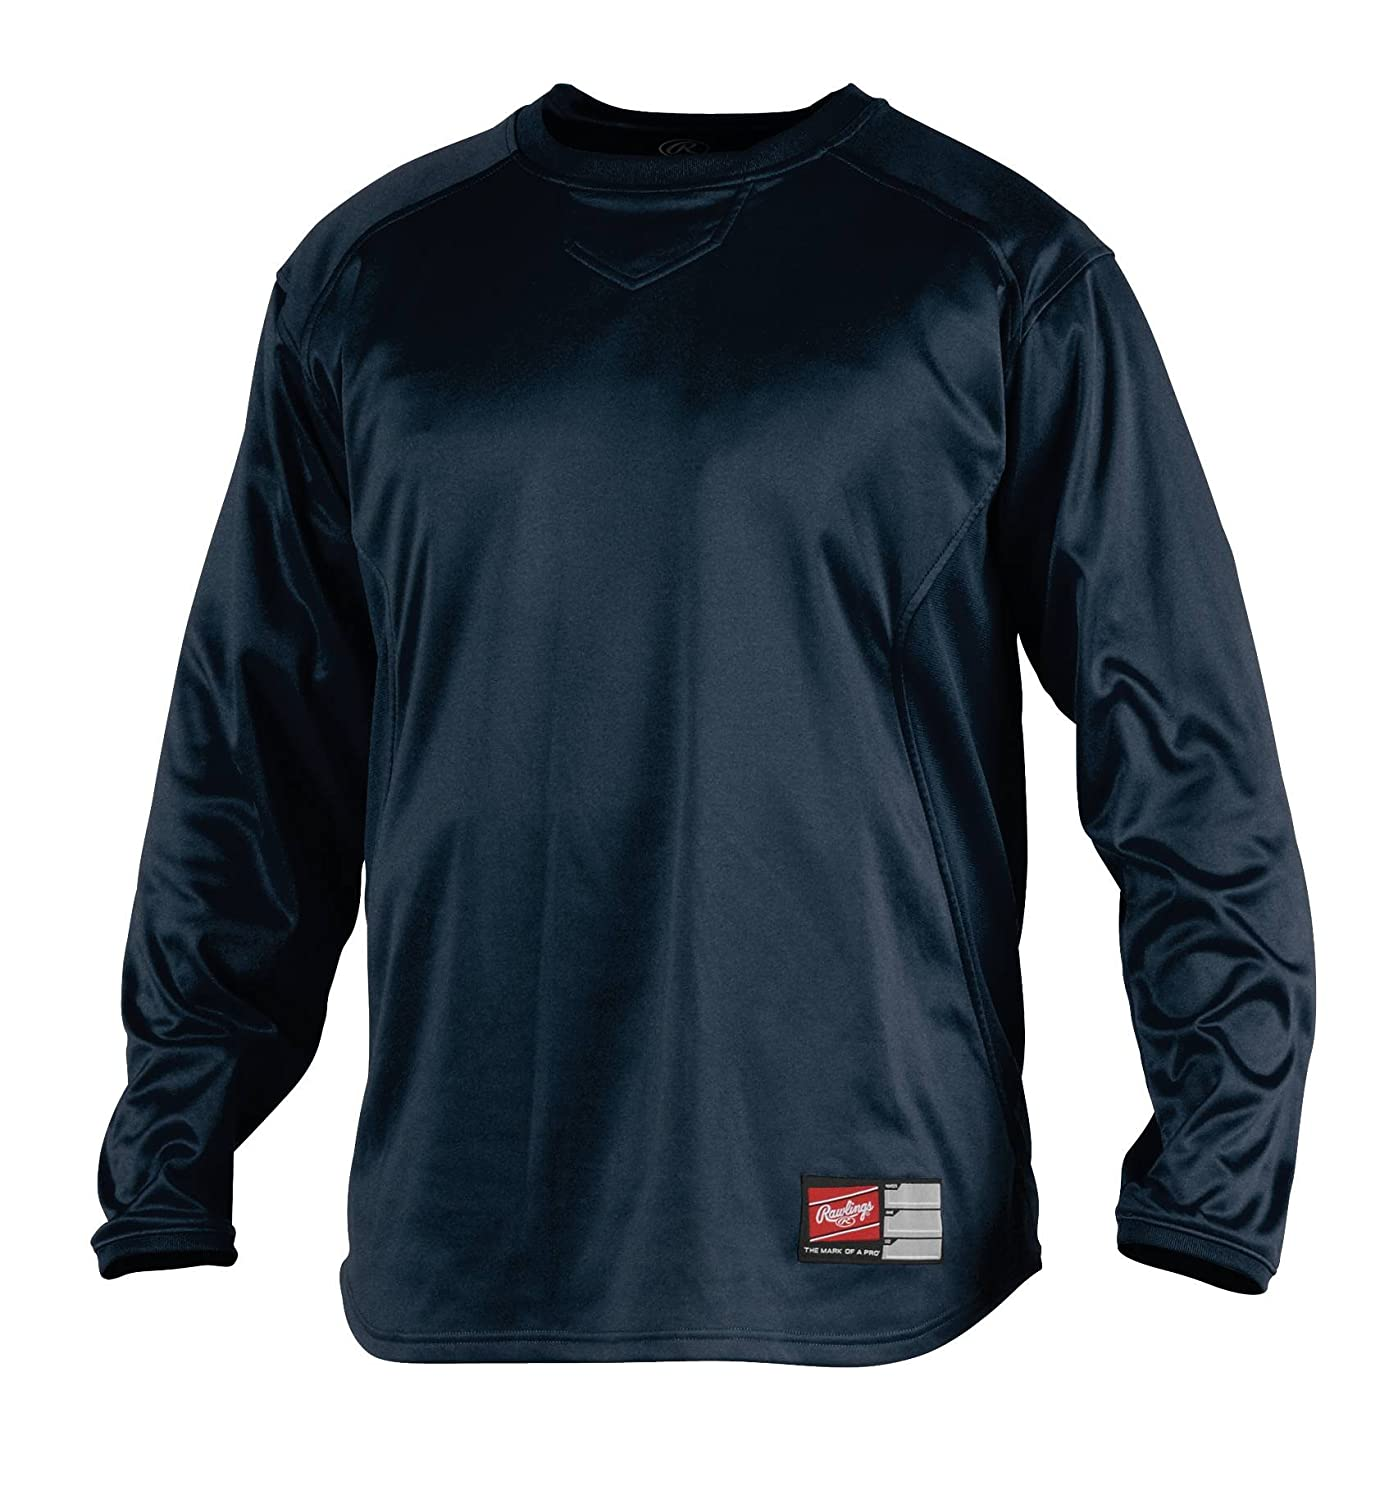 ef6976e8229 Rawlings youth dugout fleece pullover athletic sweatshirts sports outdoors  jpg 1389x1500 Rawlings youth baseball jersey